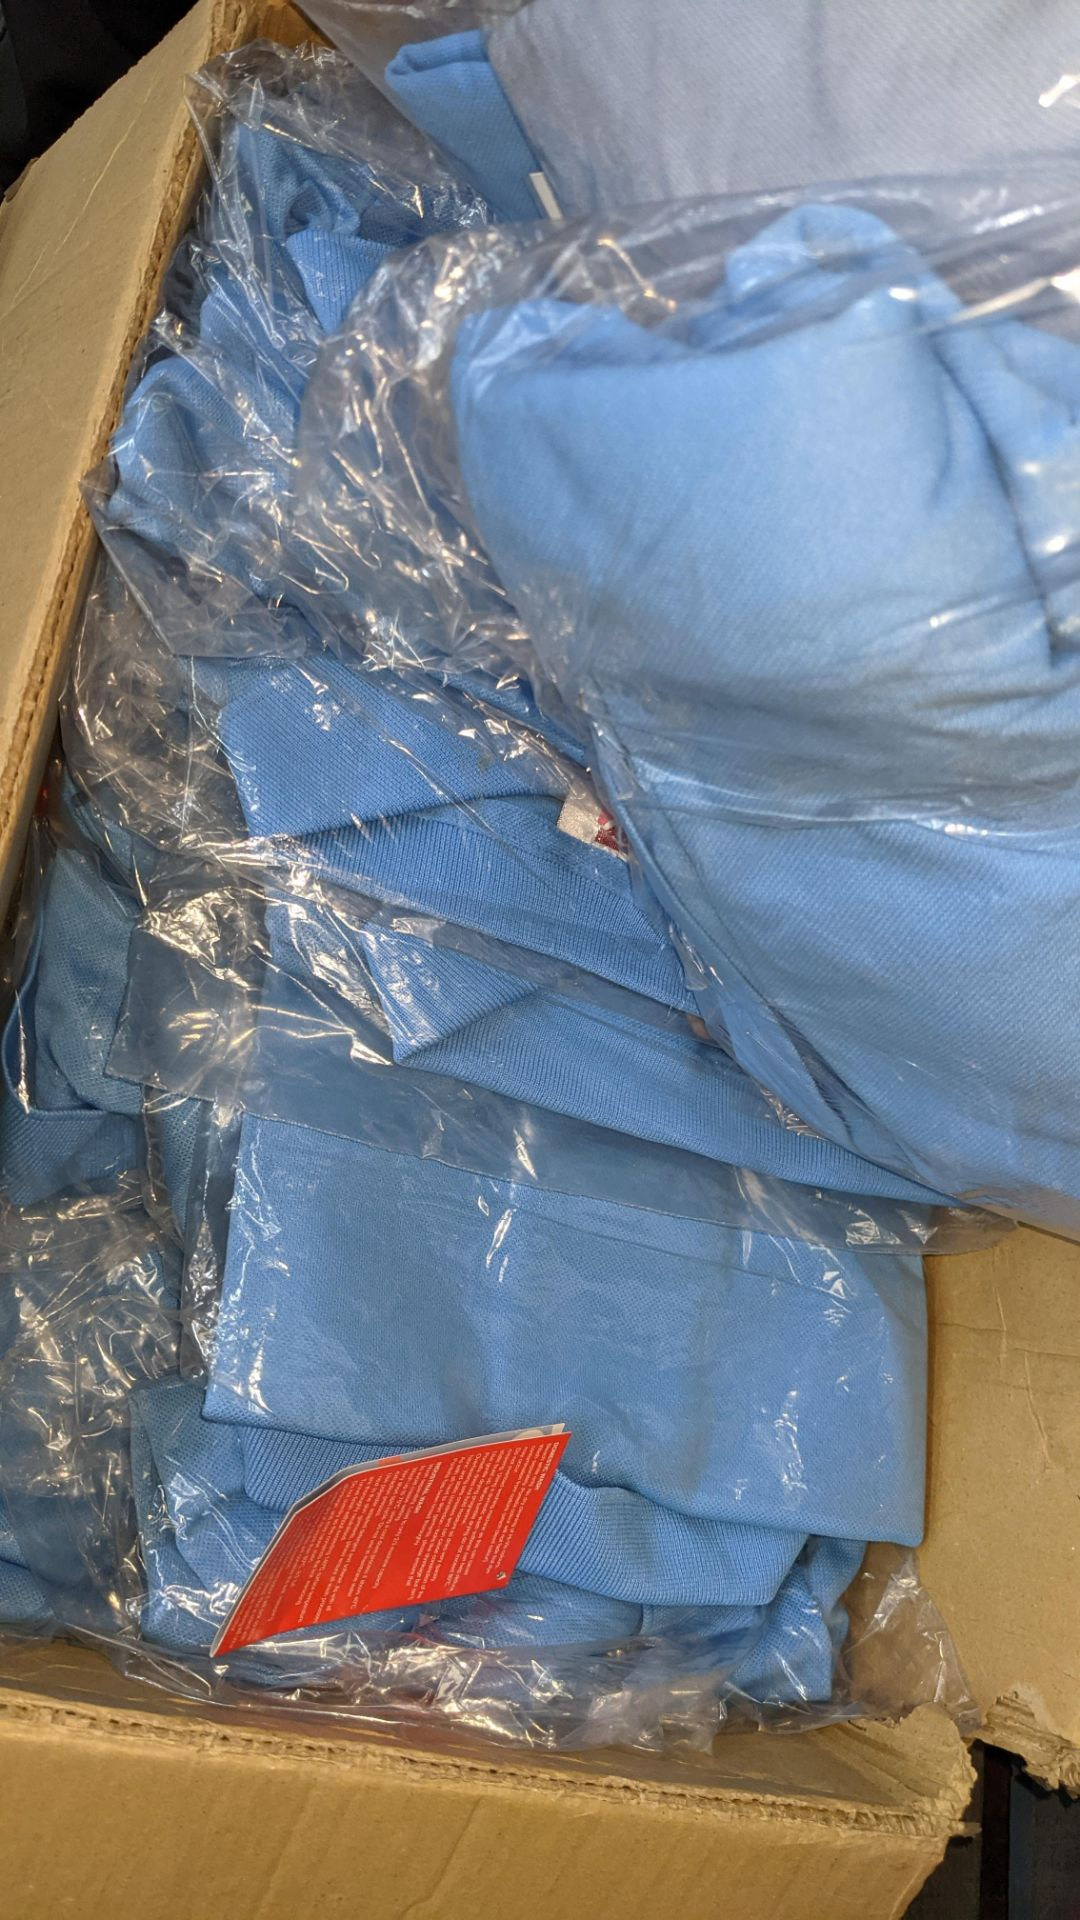 Approx 25 off pale blue polo shirts - Image 5 of 5